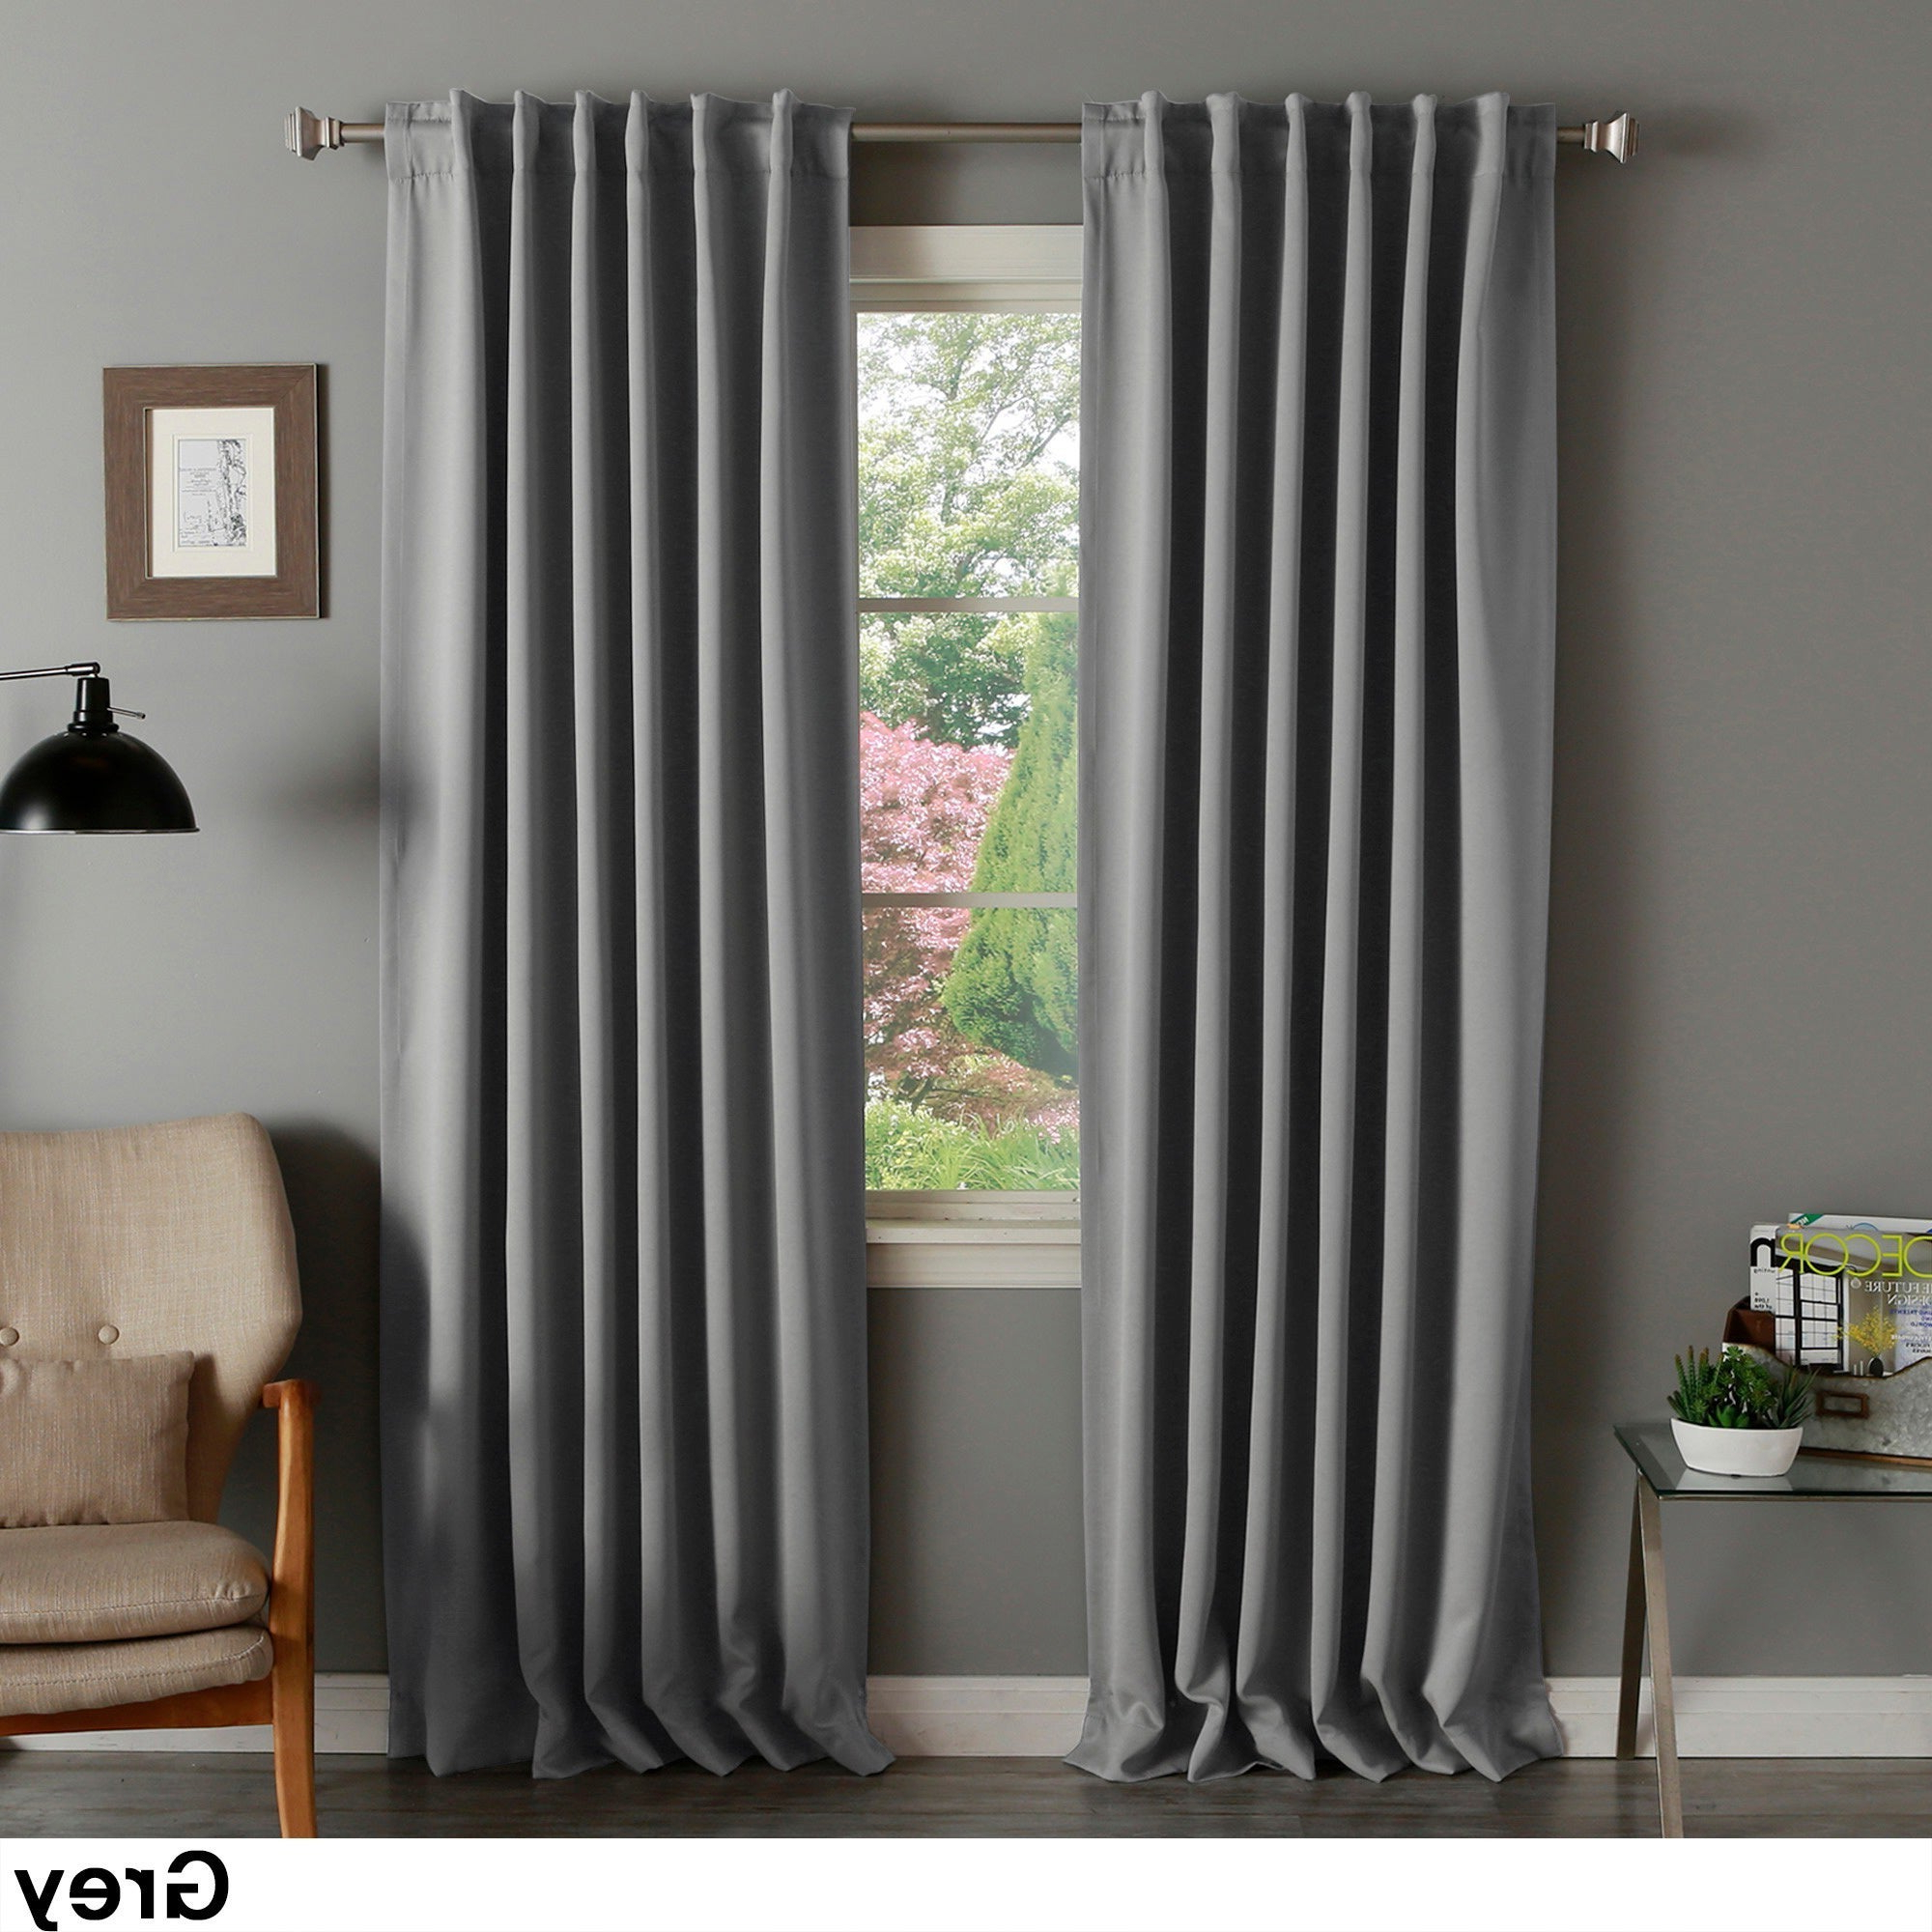 Insulated Thermal Blackout Curtain Panel Pairs Intended For 2021 Aurora Home Solid Thermal Insulated 108 Inch Blackout Curtain Panel Pair – 52 X (View 19 of 20)